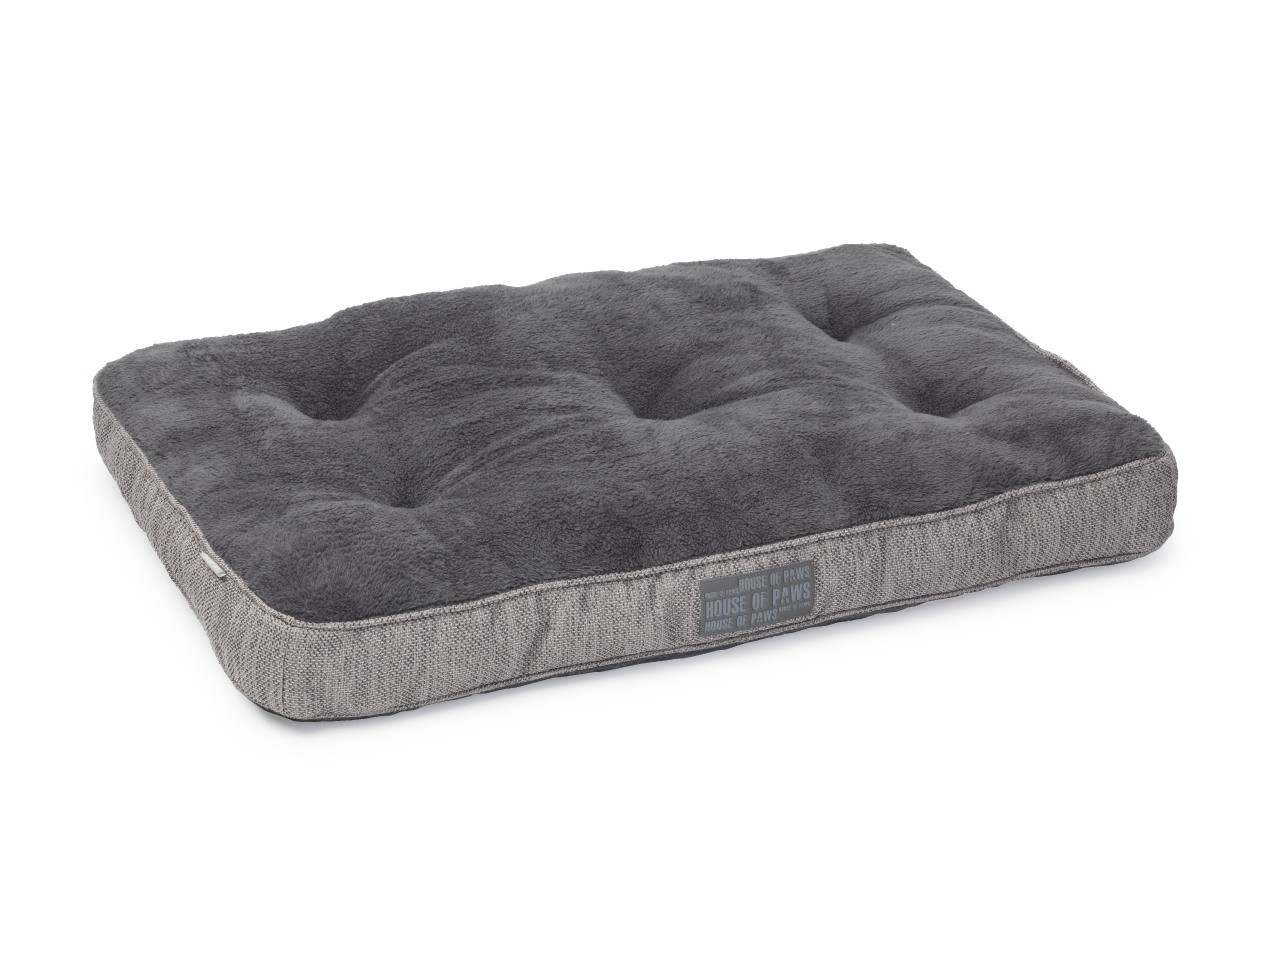 grey_hessian_boxed_duvet_dog_bed_by_house_of_paws_2_2